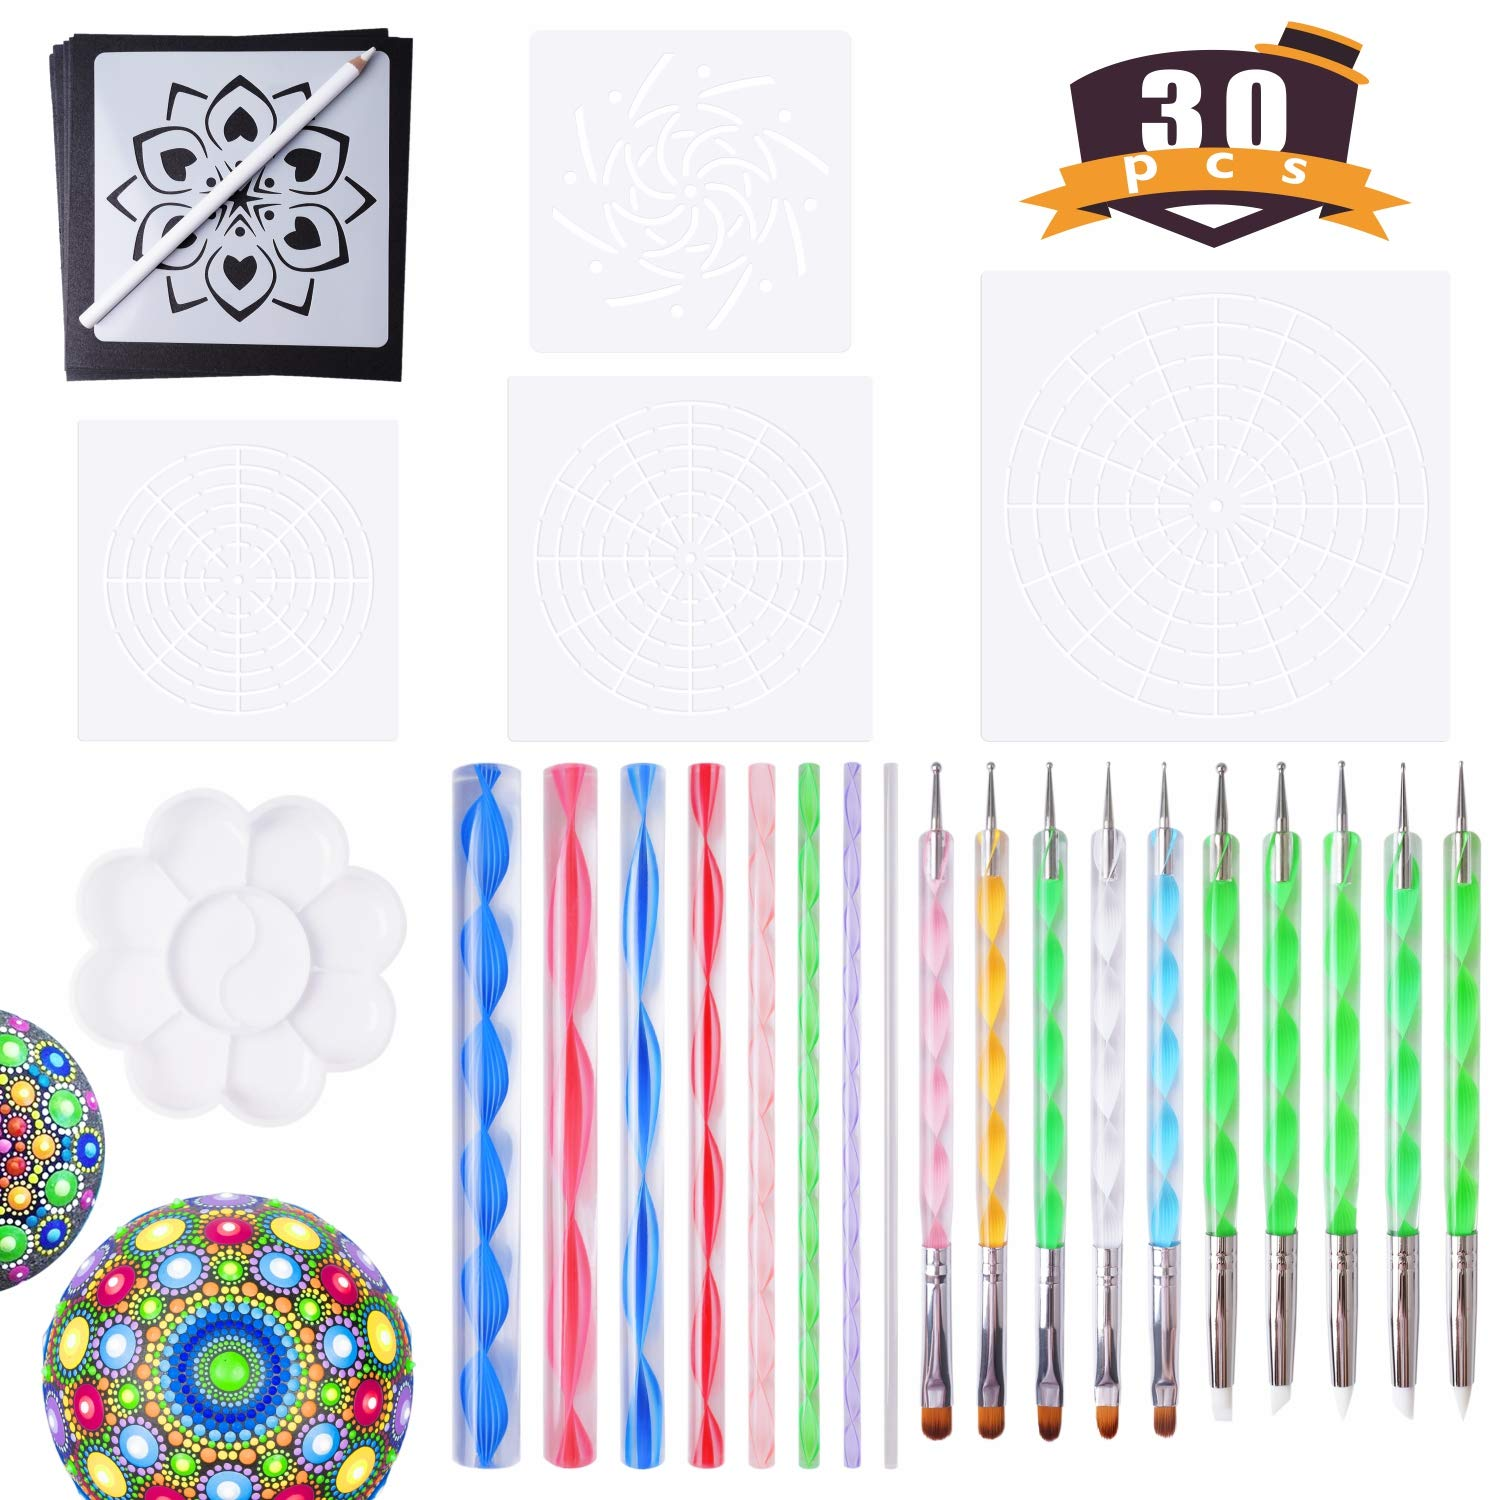 Mandala Tools for Painting Rocks Mandala Painting Dotting Stencil Dot Mandala Kit 30 PCS FittiDoll